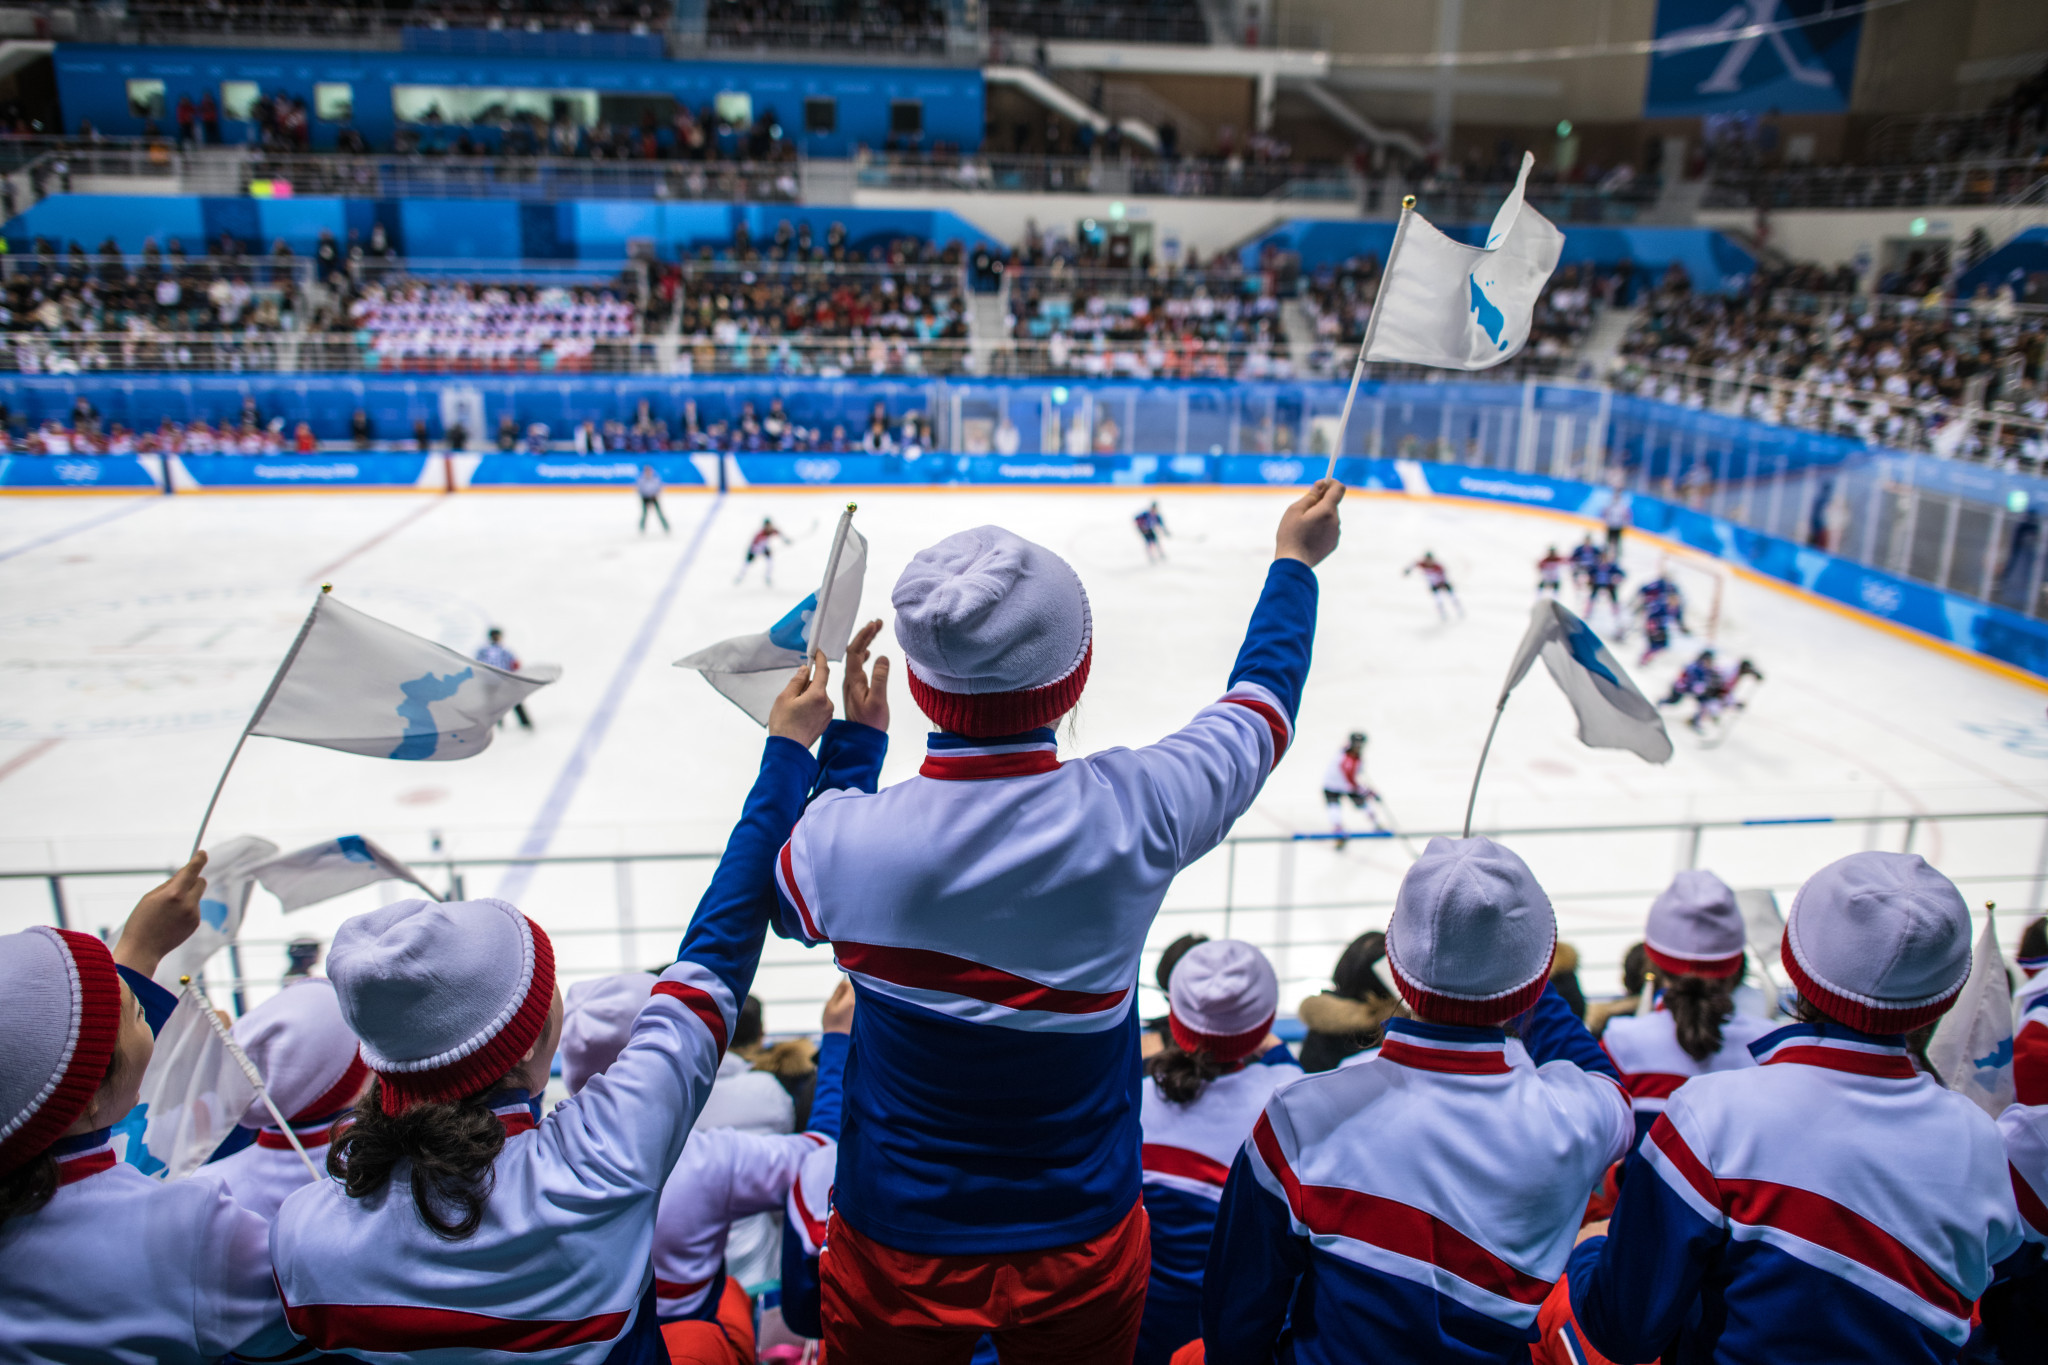 The unified Korean team have played three games at Pyeongchang 2018 ©Getty Images